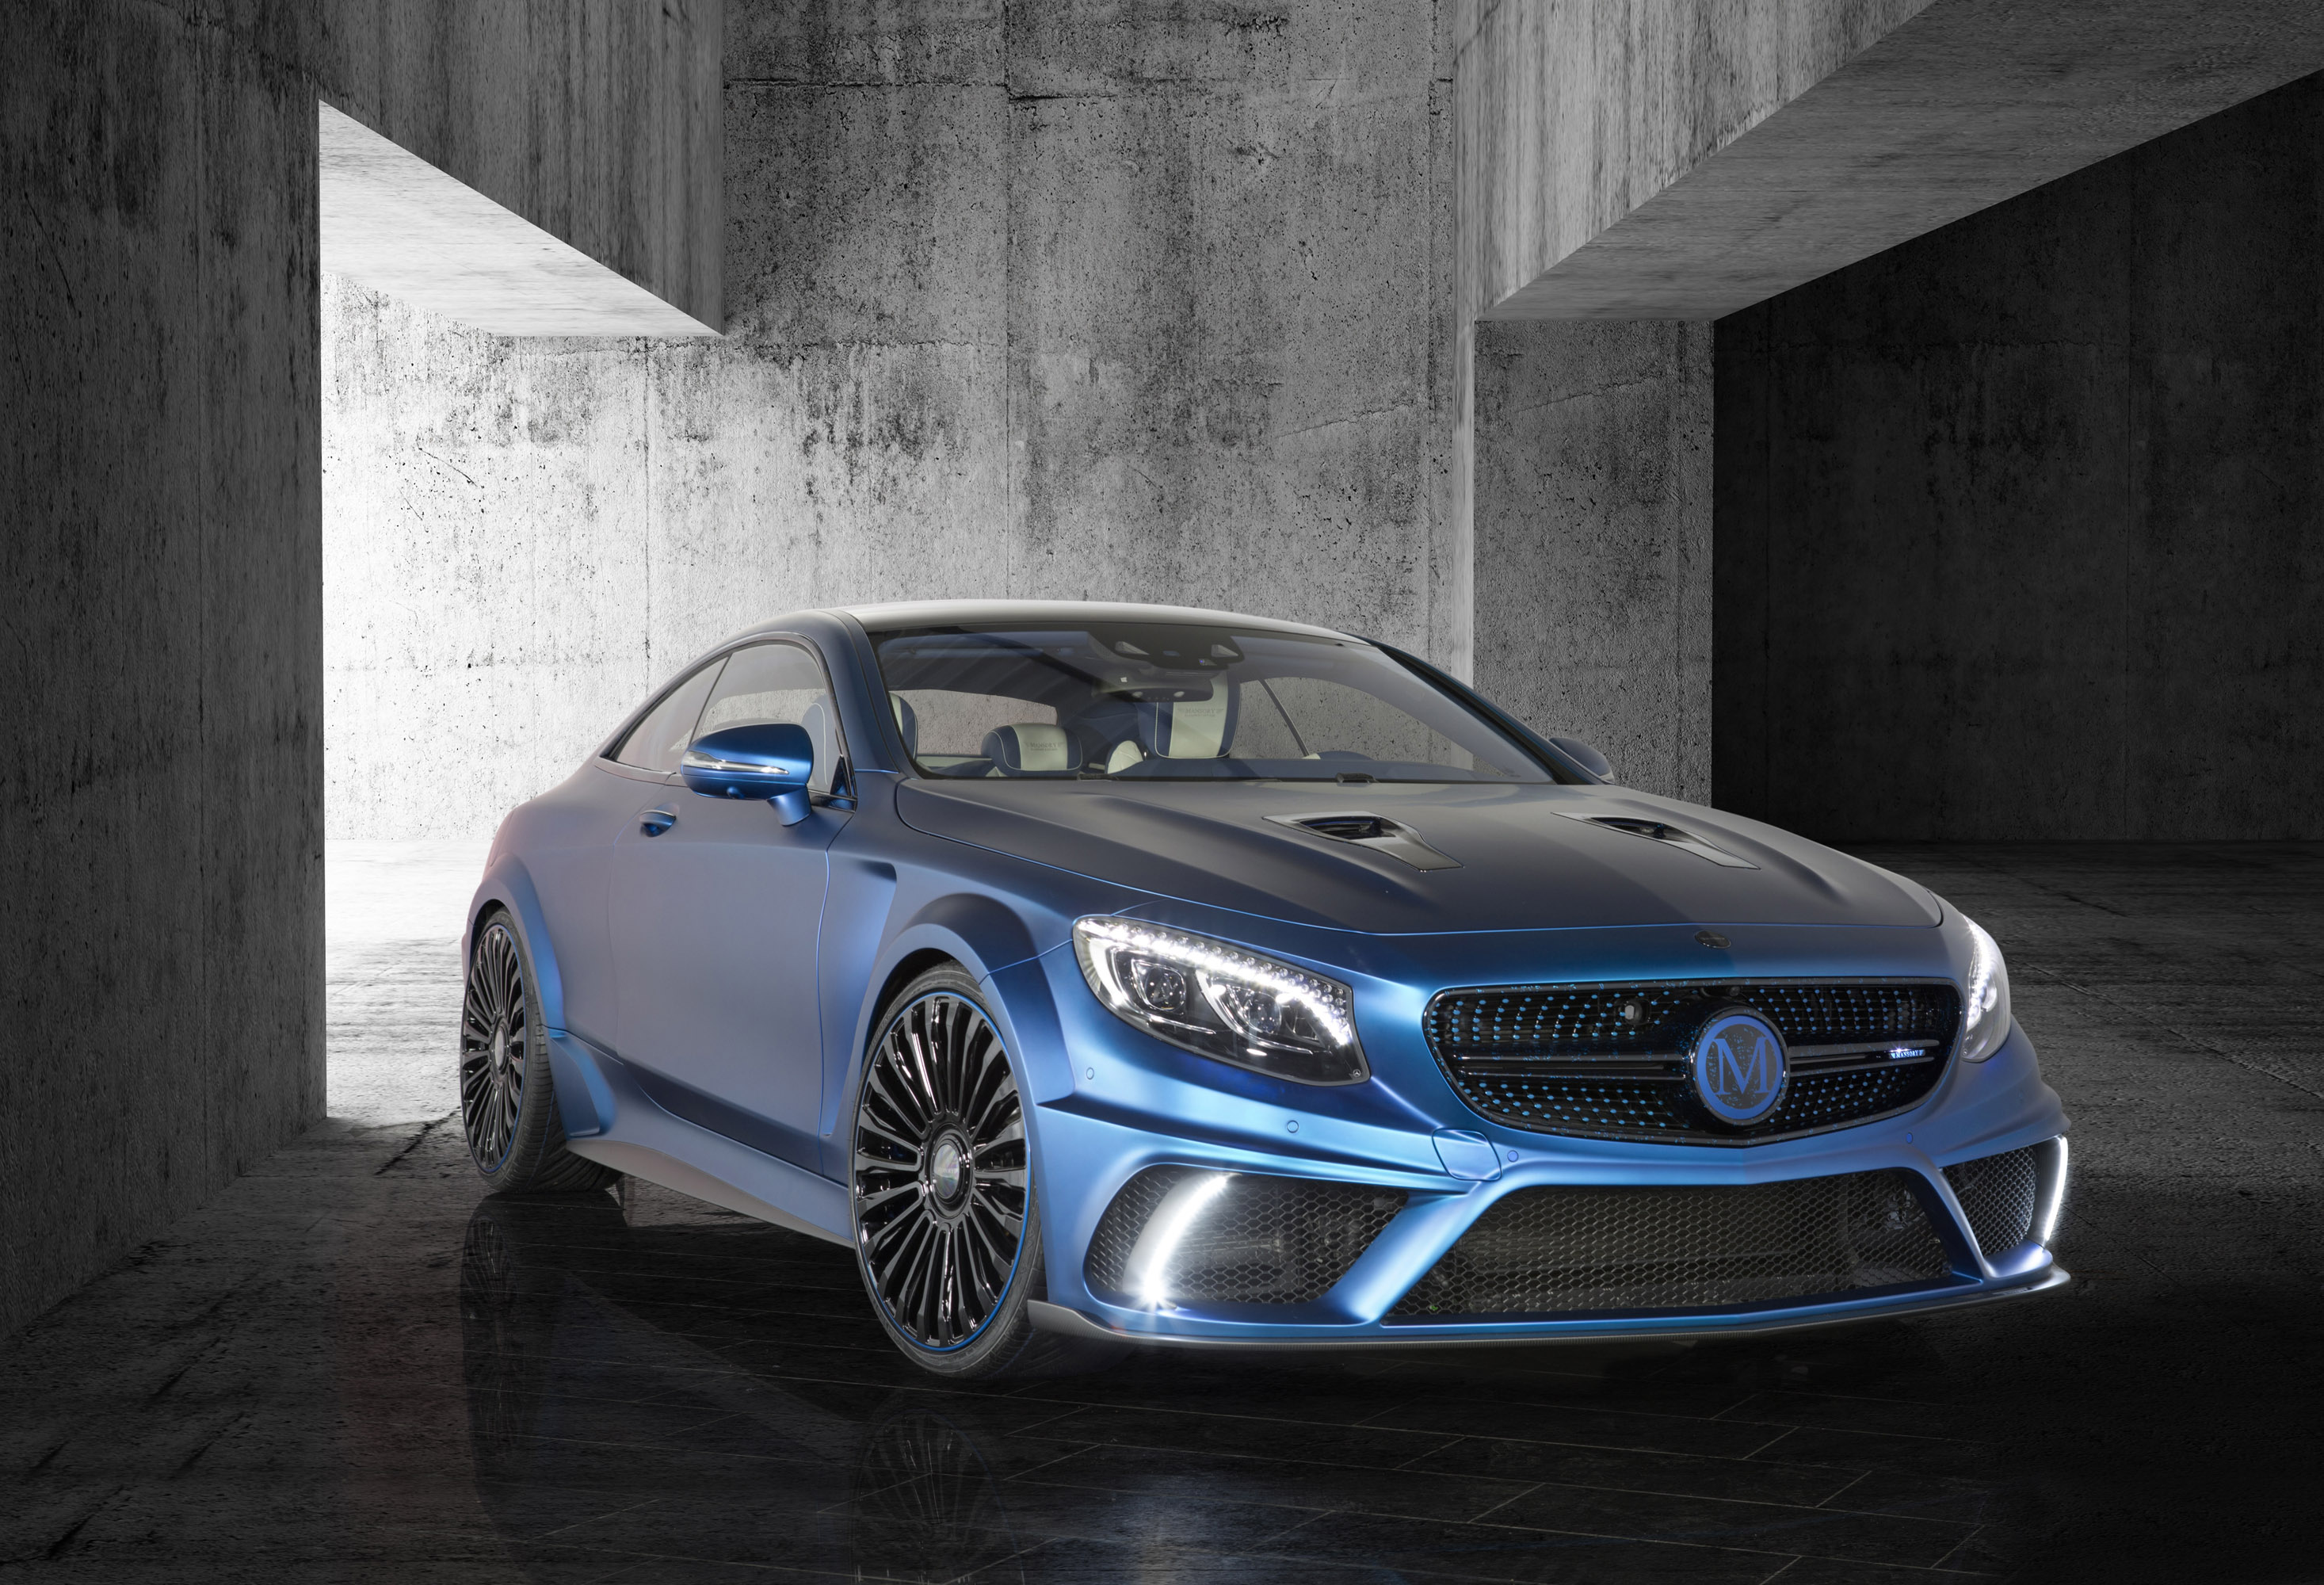 Mansory Mercedes-Benz S63 AMG Diamond Edition photo #1